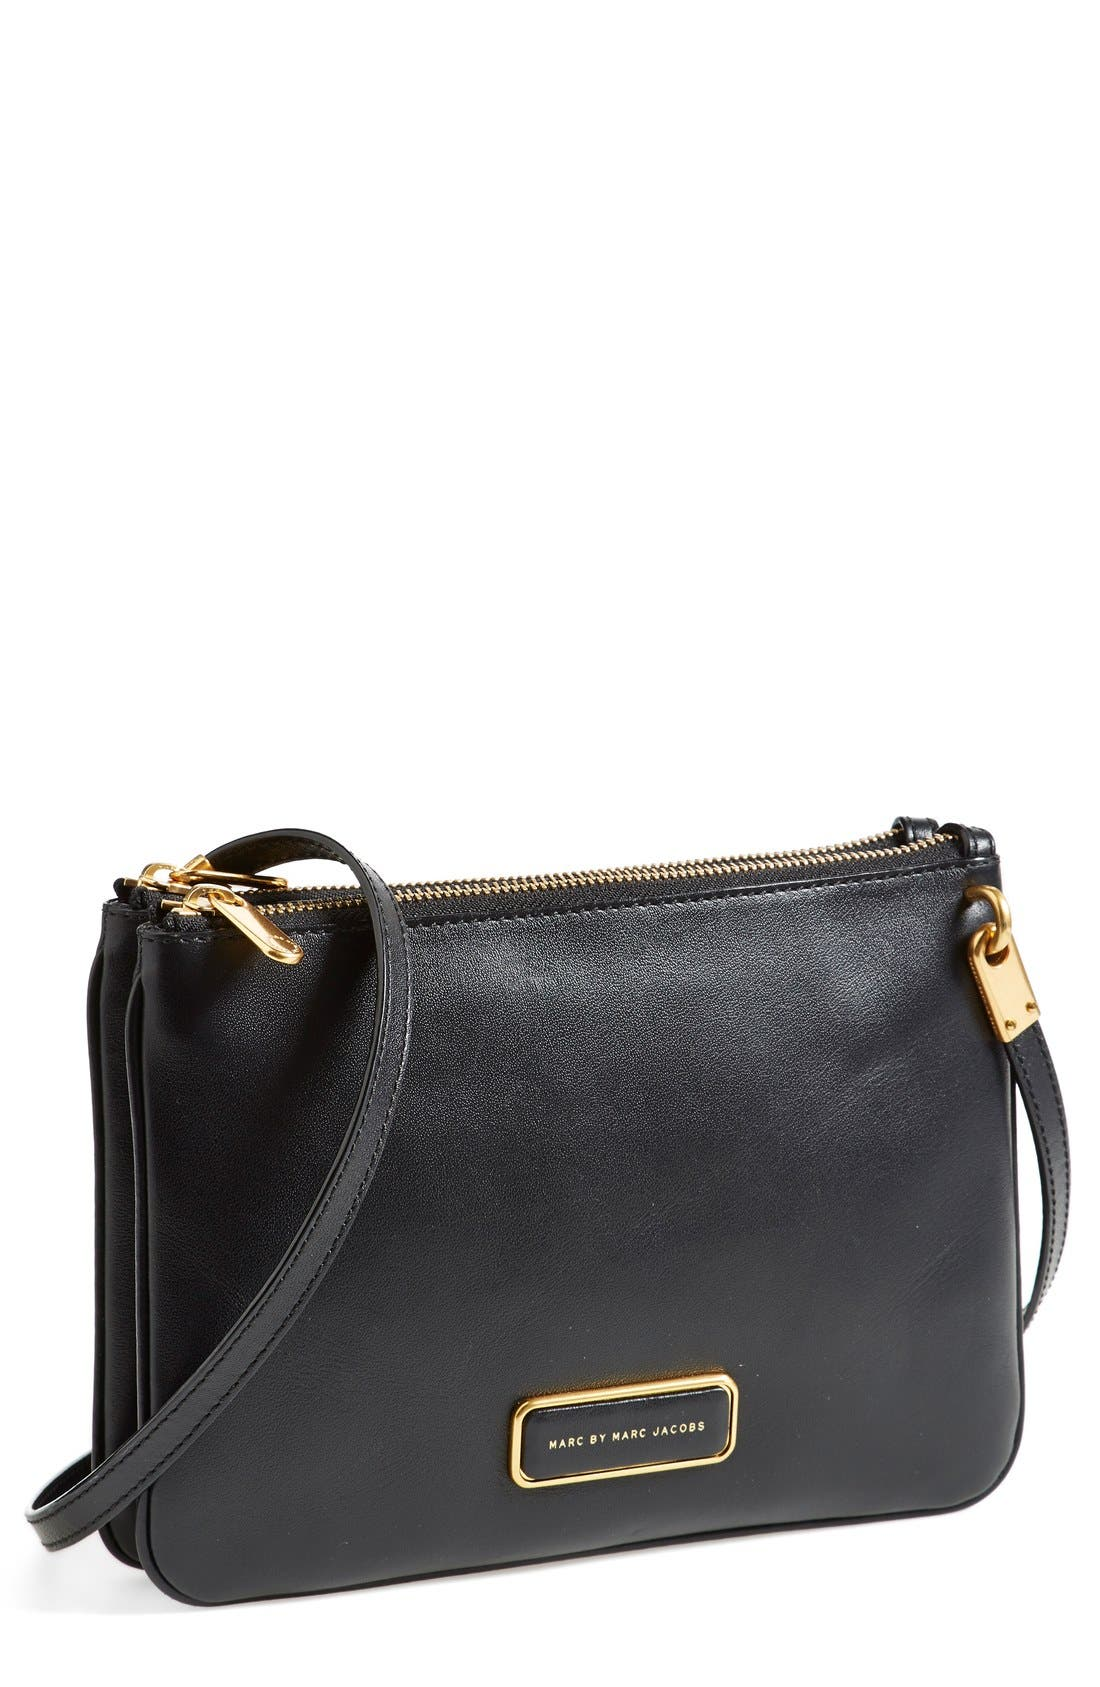 MARC JACOBS MARC BY MARC JACOBS 'Double Percy' Crossbody Bag, Main, color, 001